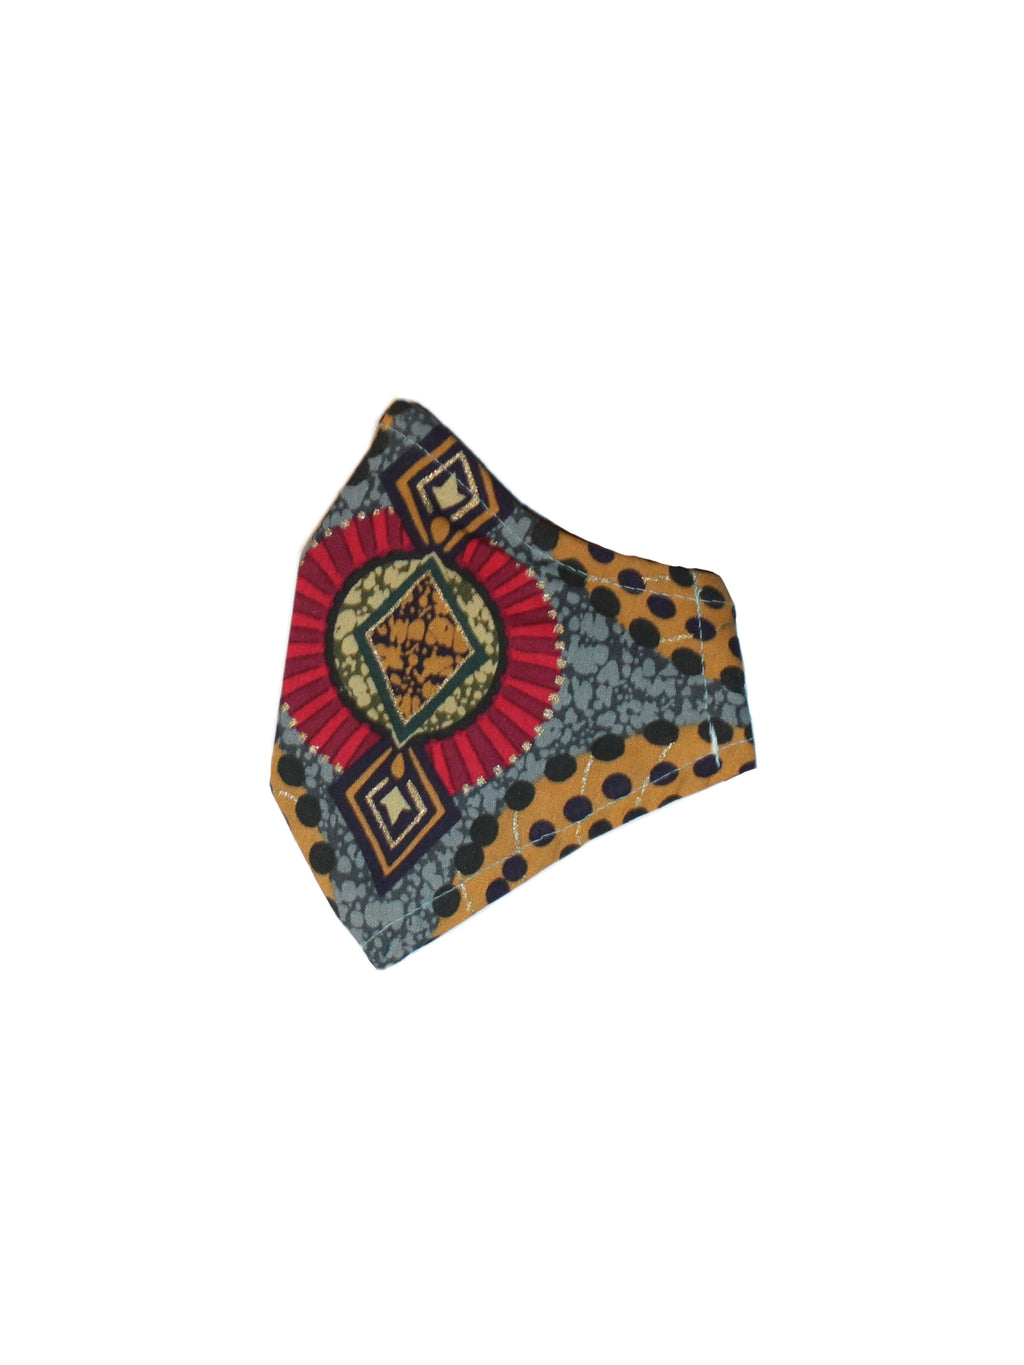 Ankara mask (Limited Edition)9